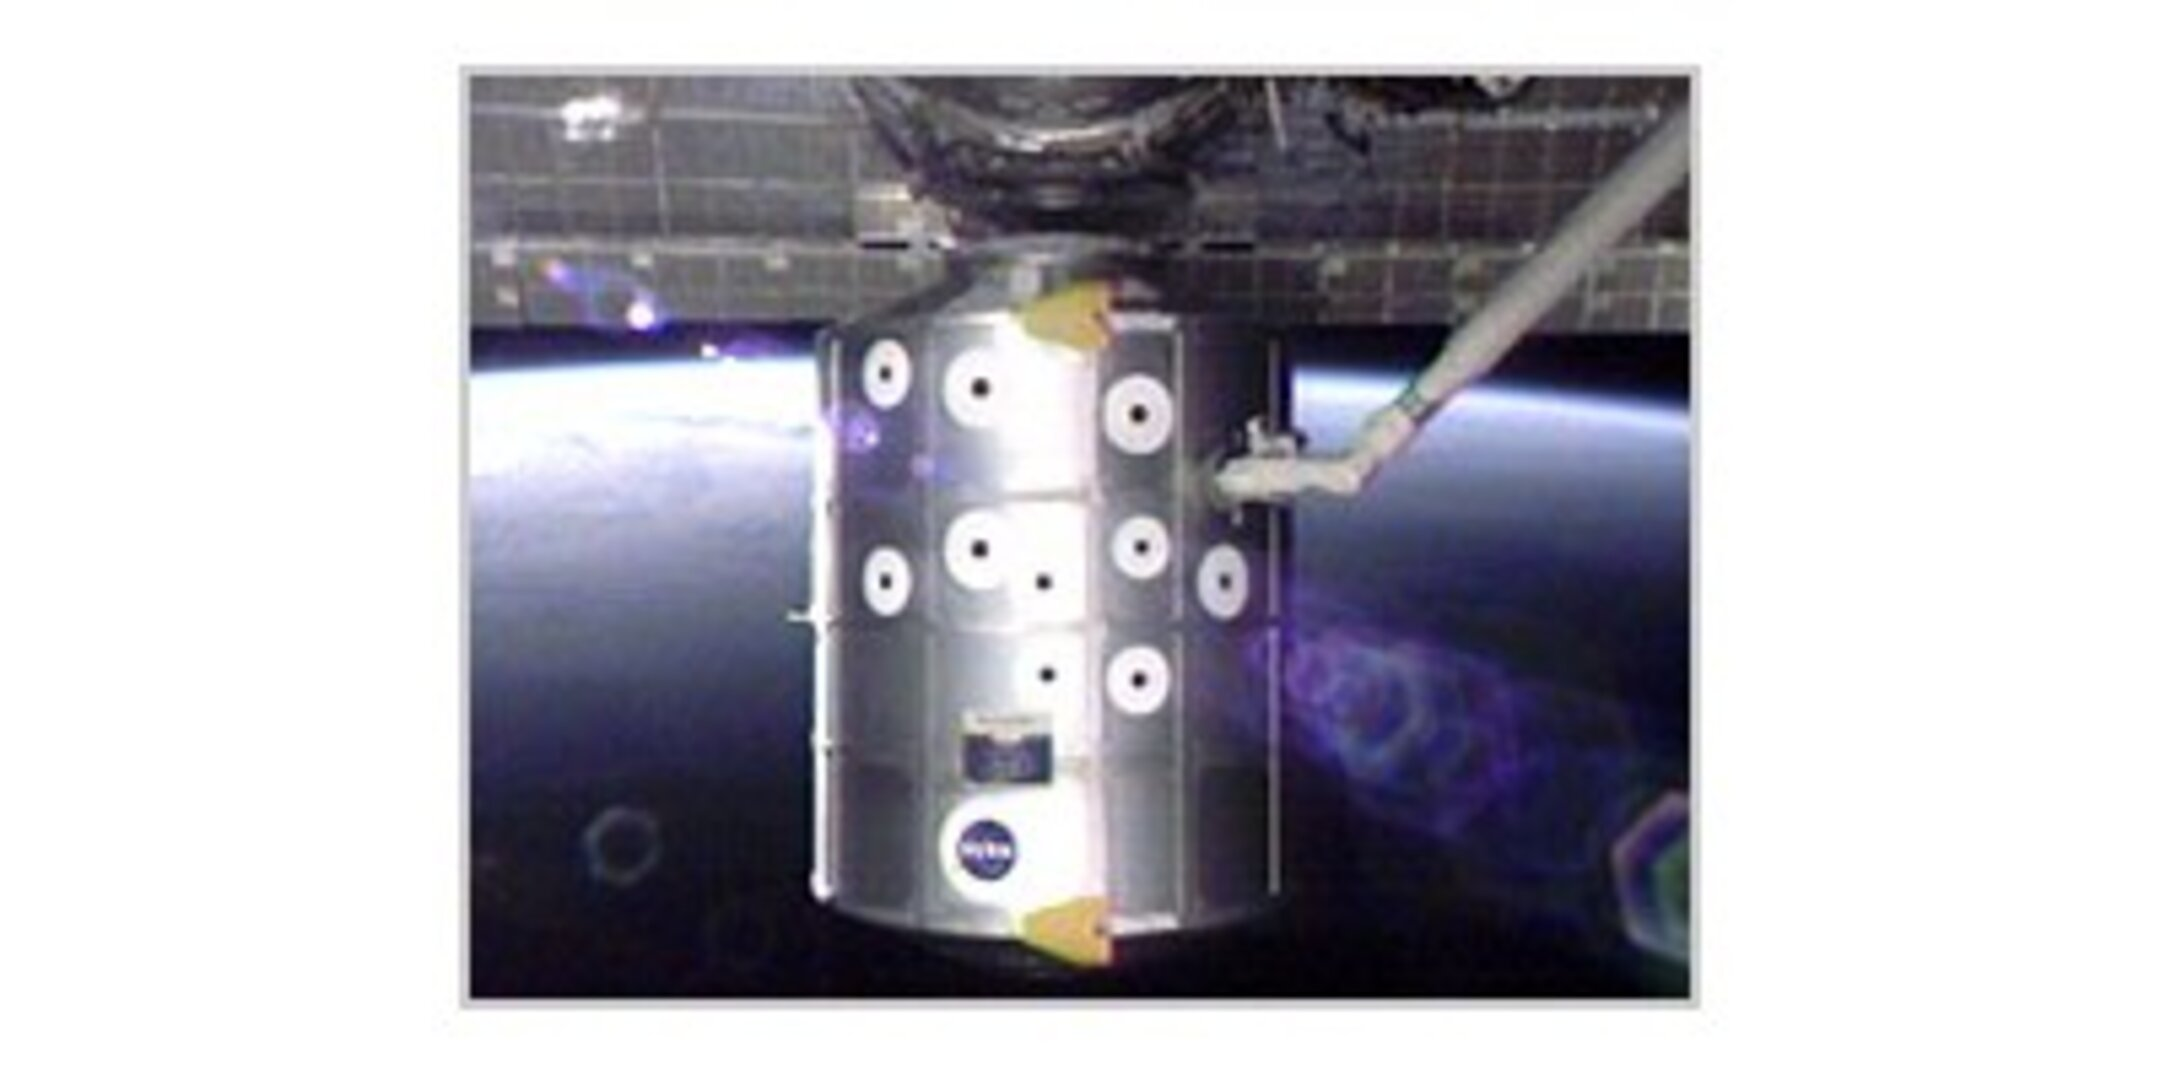 The Raffaello module is moved away from the ISS using Endeavour's robotic arm